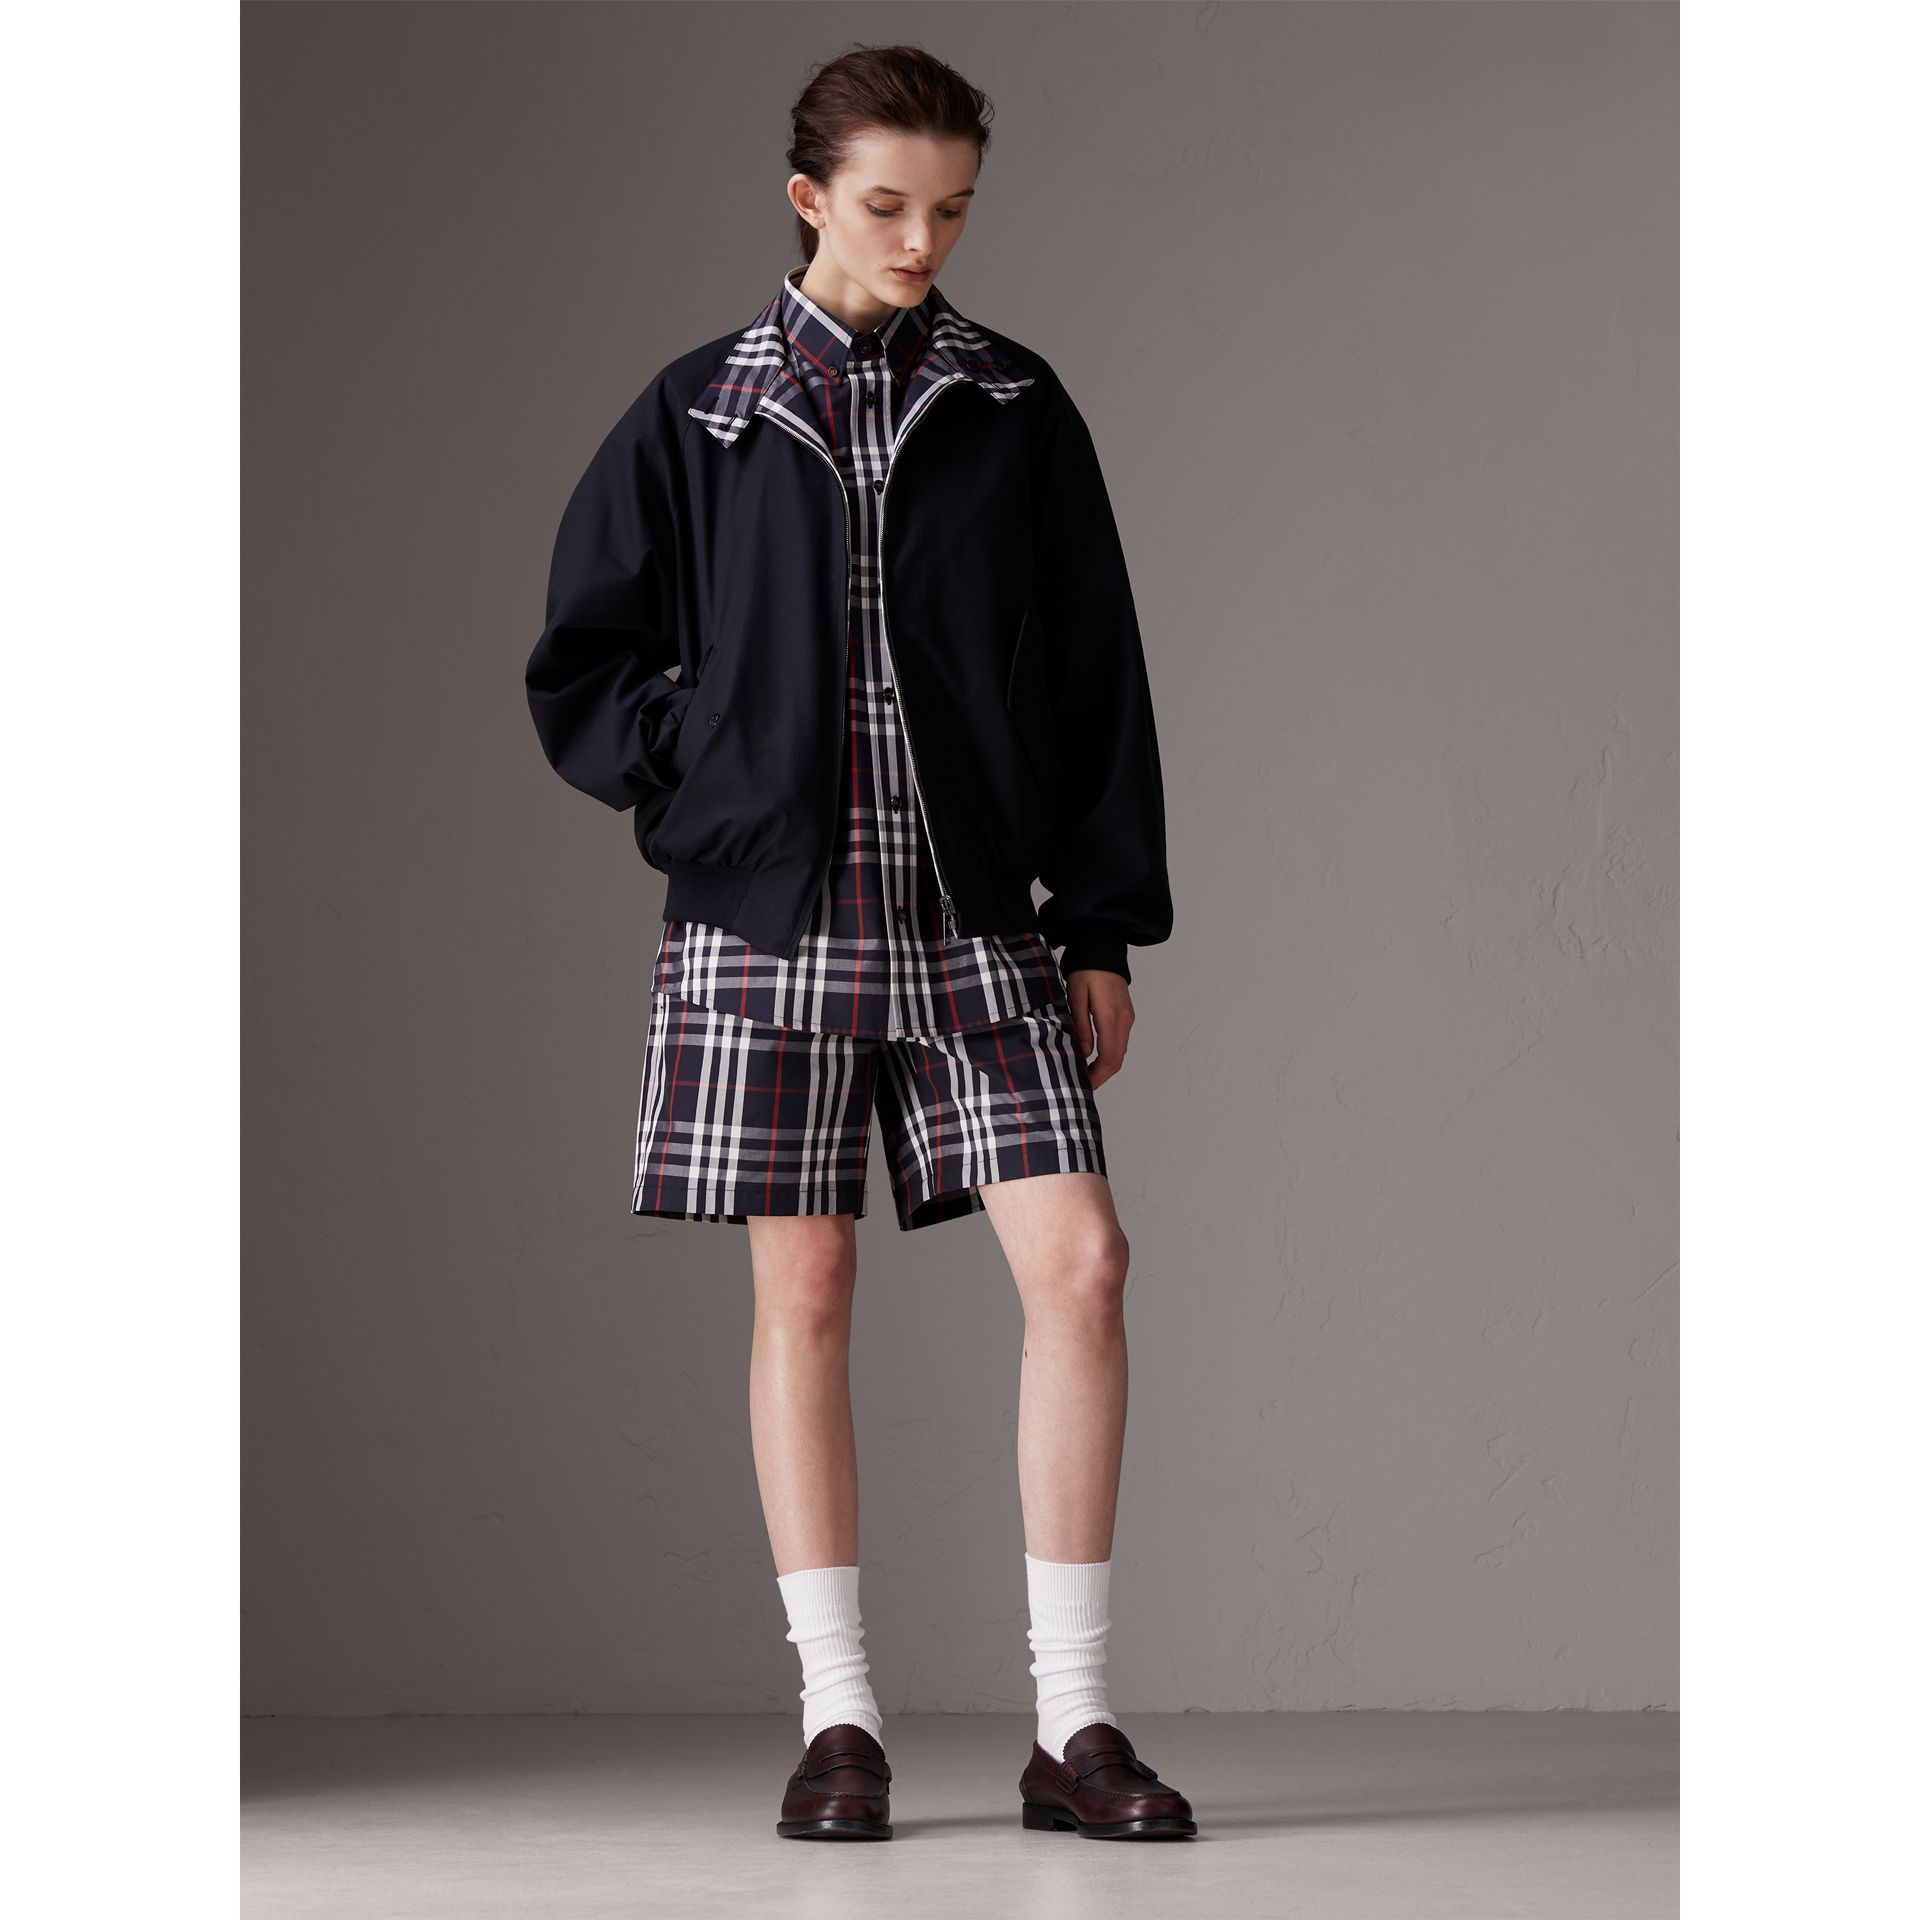 Gosha x Burberry Reversible Harrington Jacket in Navy | Burberry United Kingdom - gallery image 3